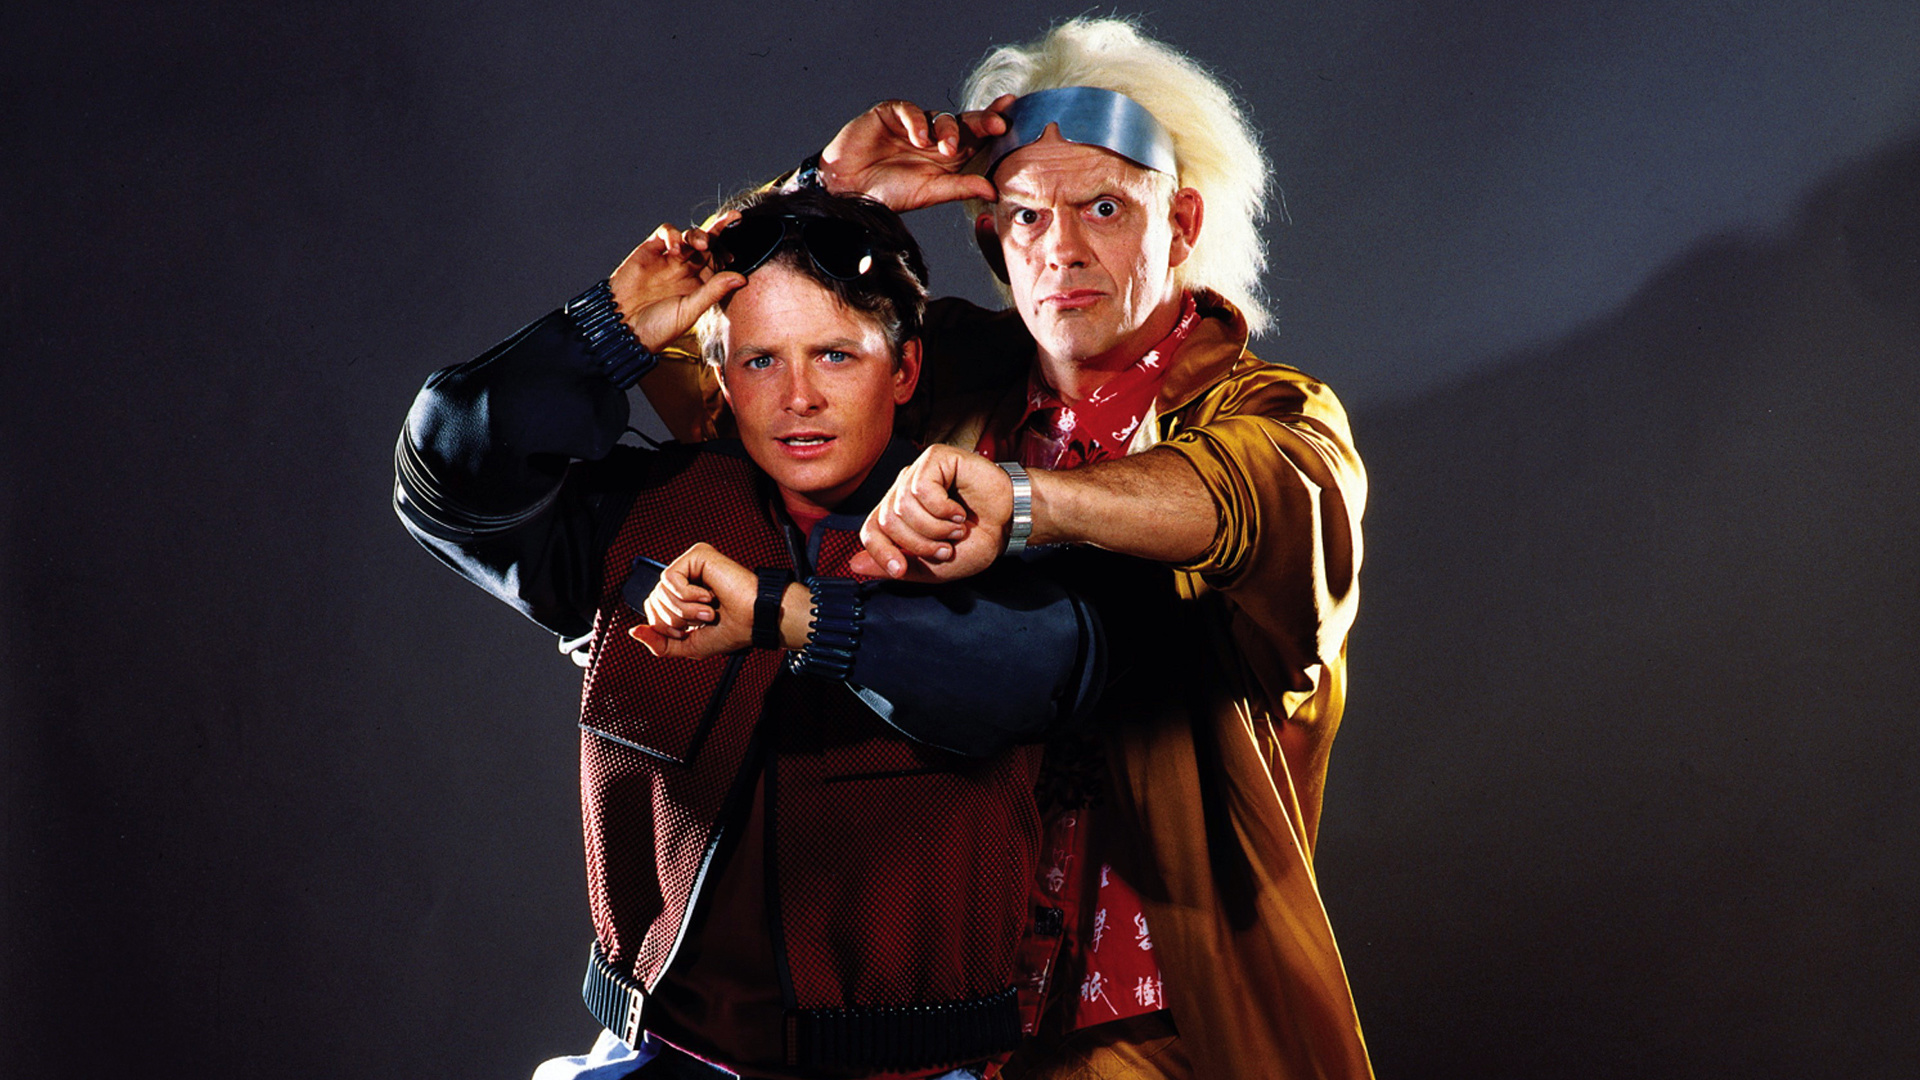 Desktop Wallpapers Back To The Future Men Film Glasses 1920x1080